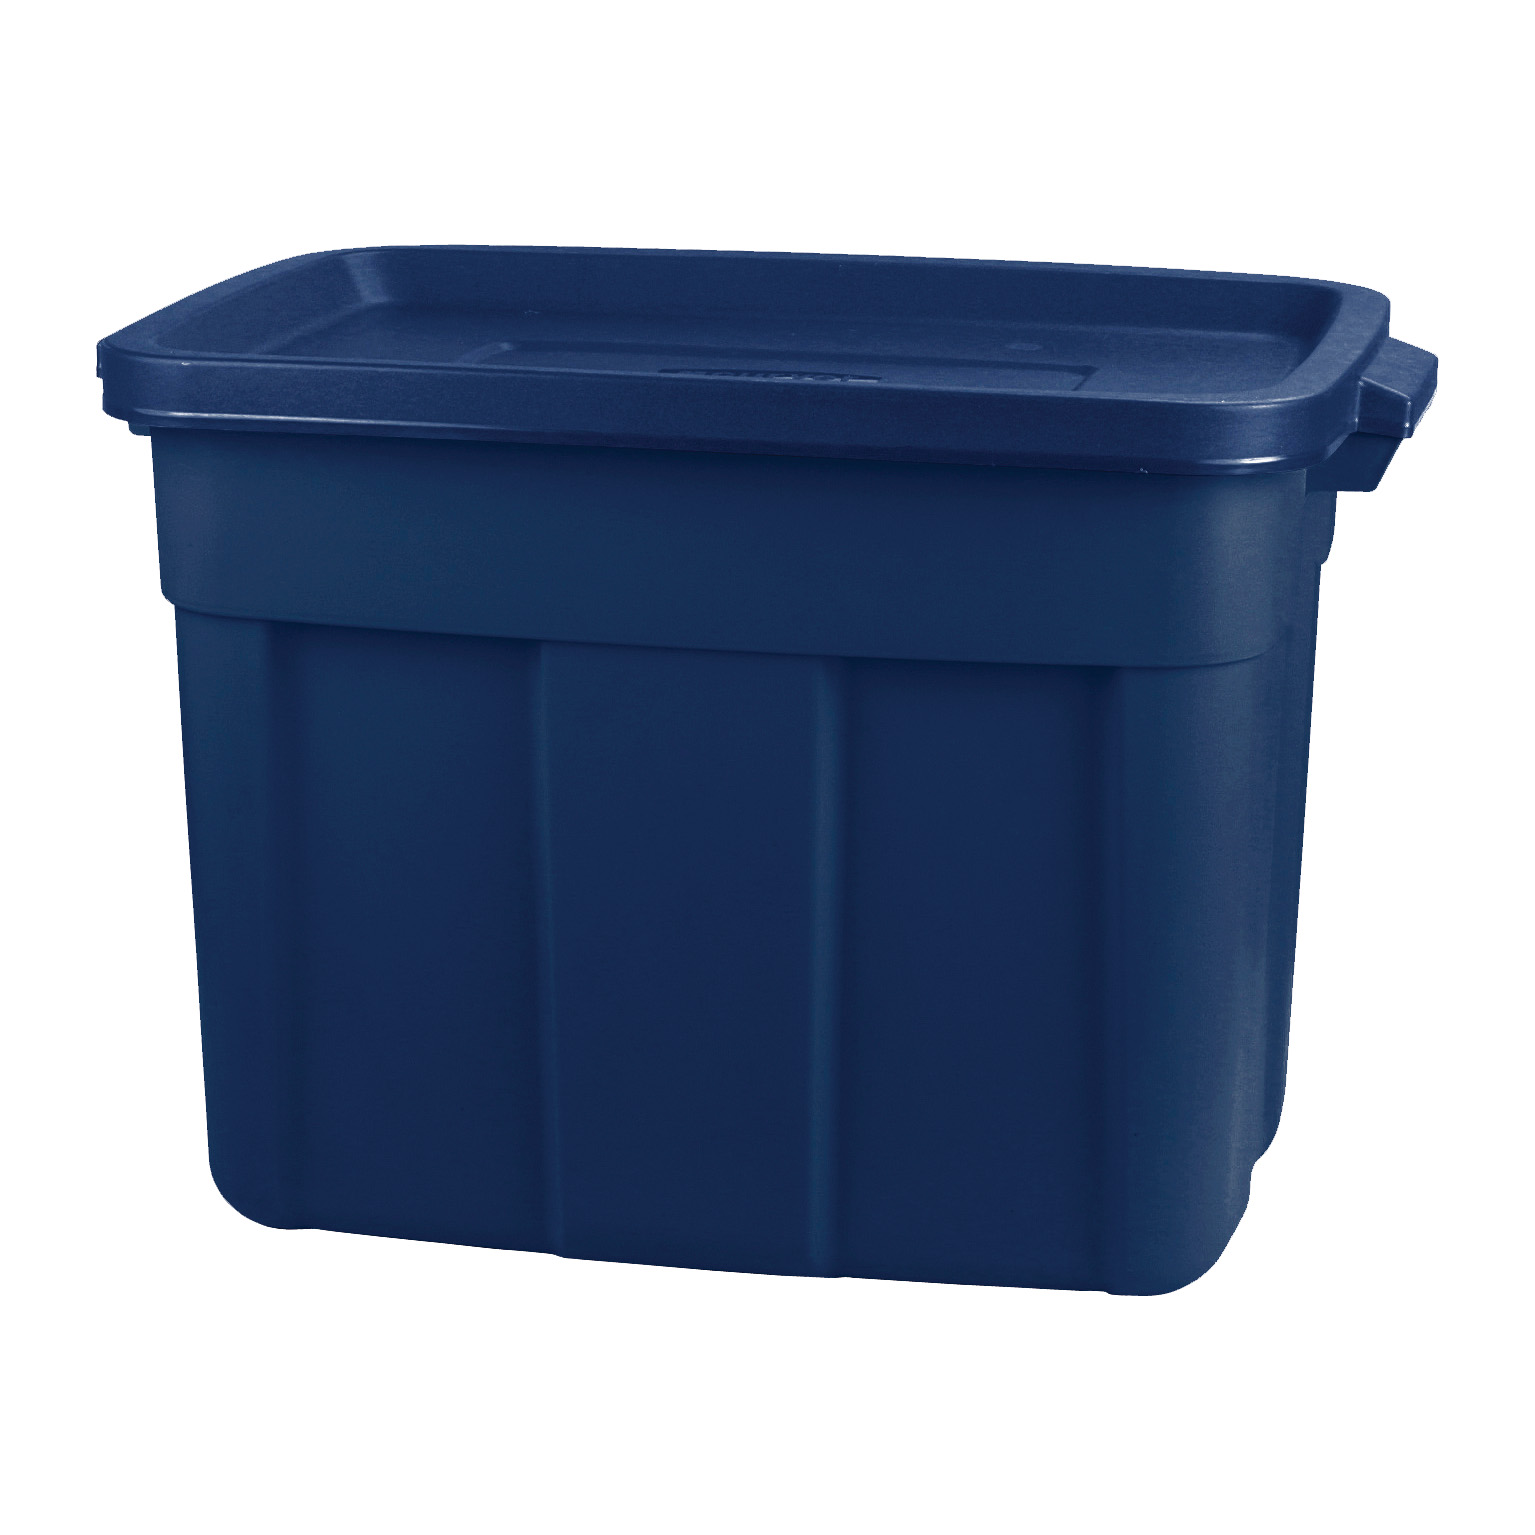 CURVER DEEP STORAGE BOX 57 LITRE BLUE